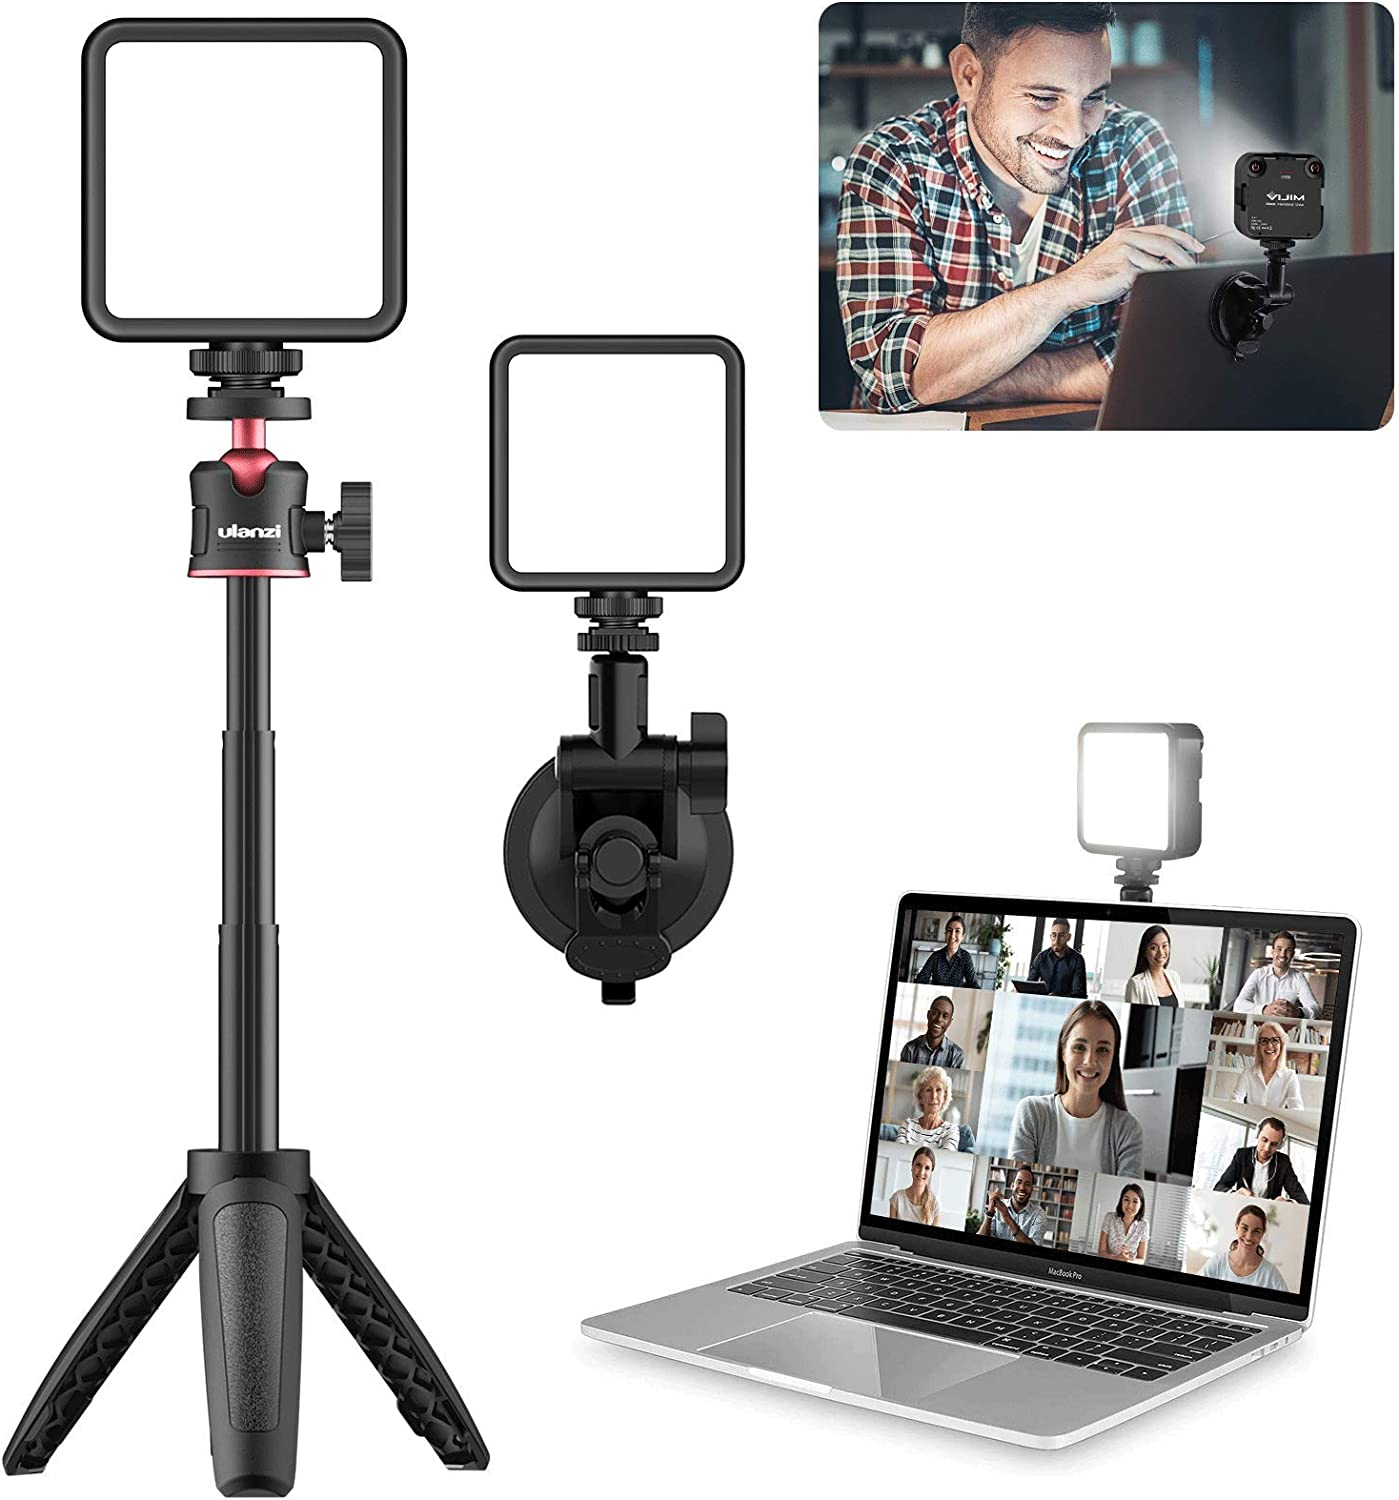 VIJIM Zoom Lighting for Computer with Strong Suction Cup and Adjustable Tripod,Laptop Light for Video Conferencing,Video Conference Lighting for Remote Working,Zoom Call,Online Meeting